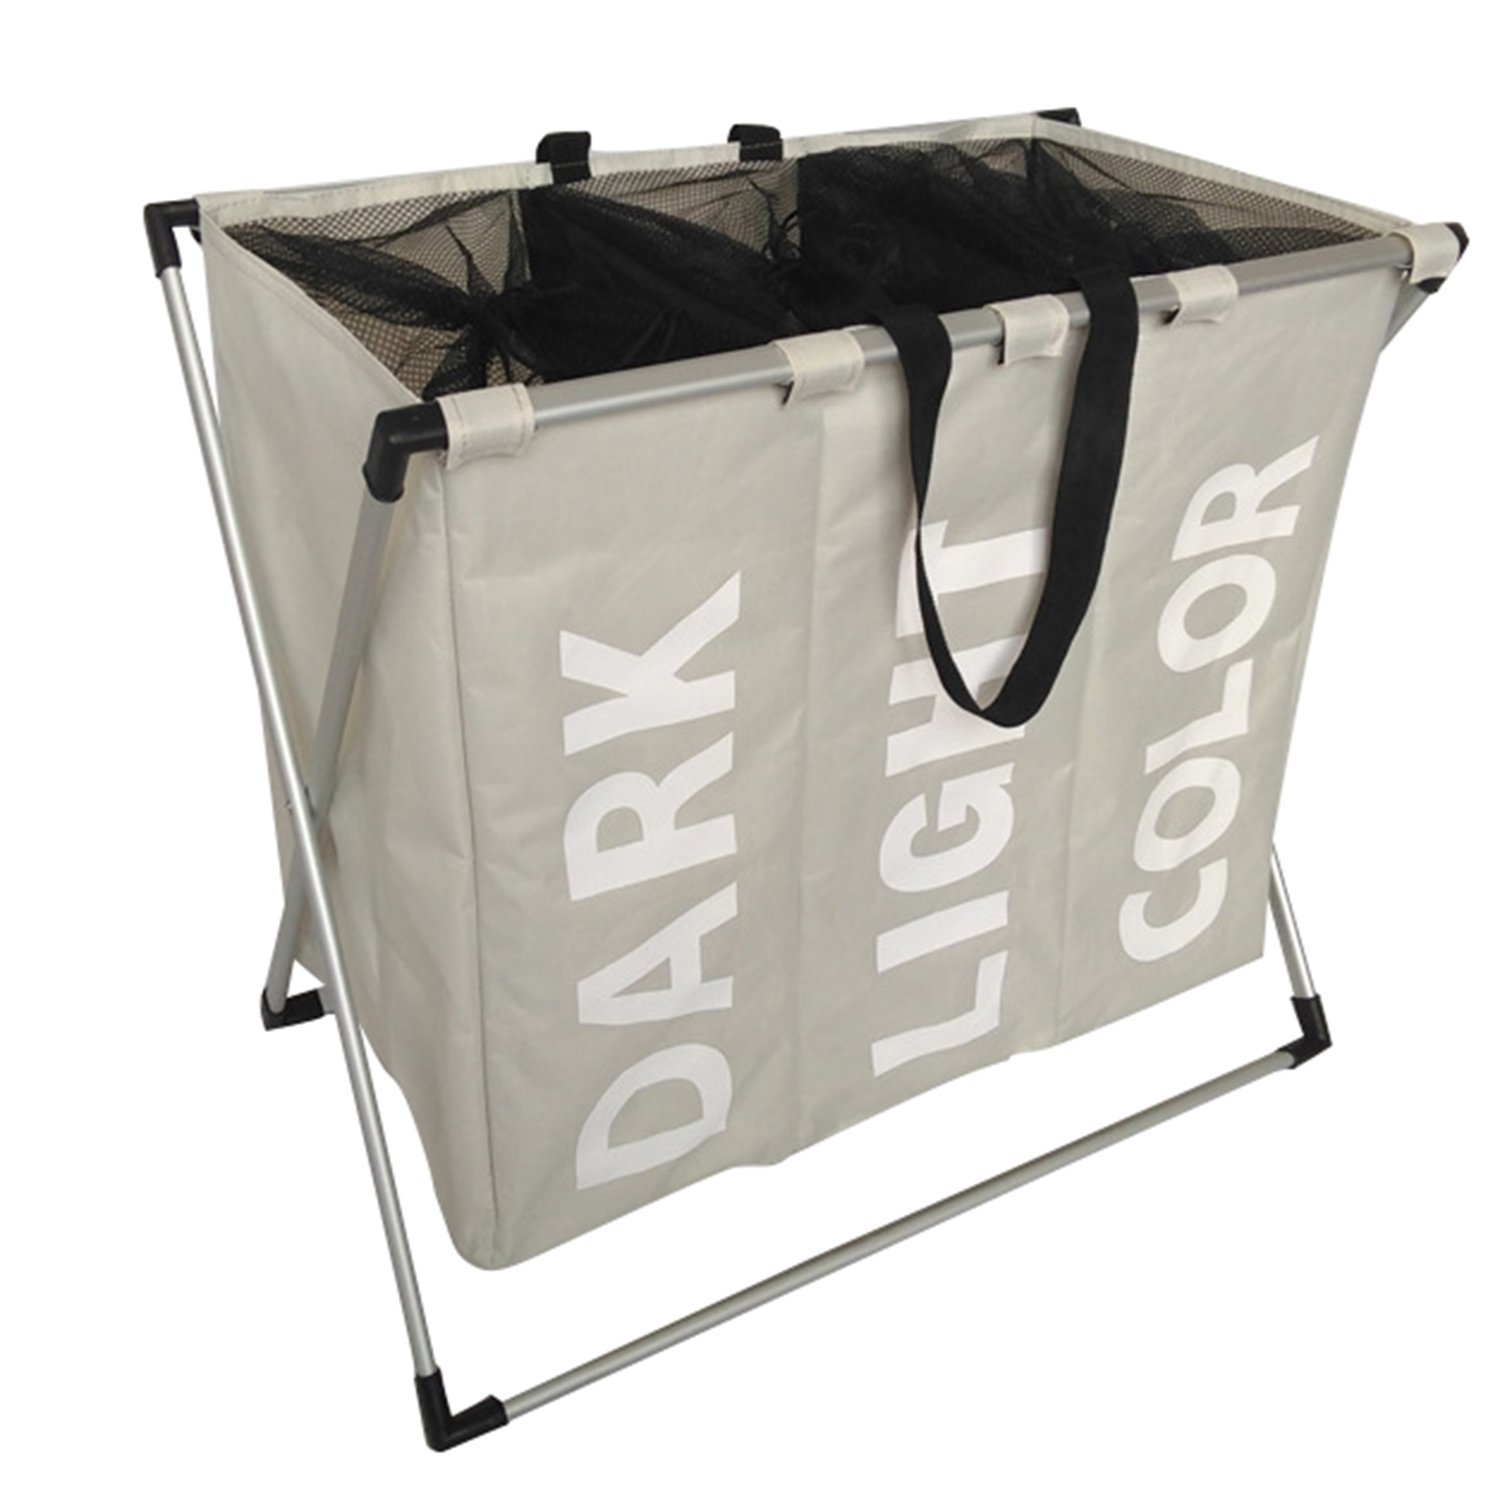 3 Oxford Bag Laundry Sorter Cart Laundry Hamper Basket X-Aluminum ...